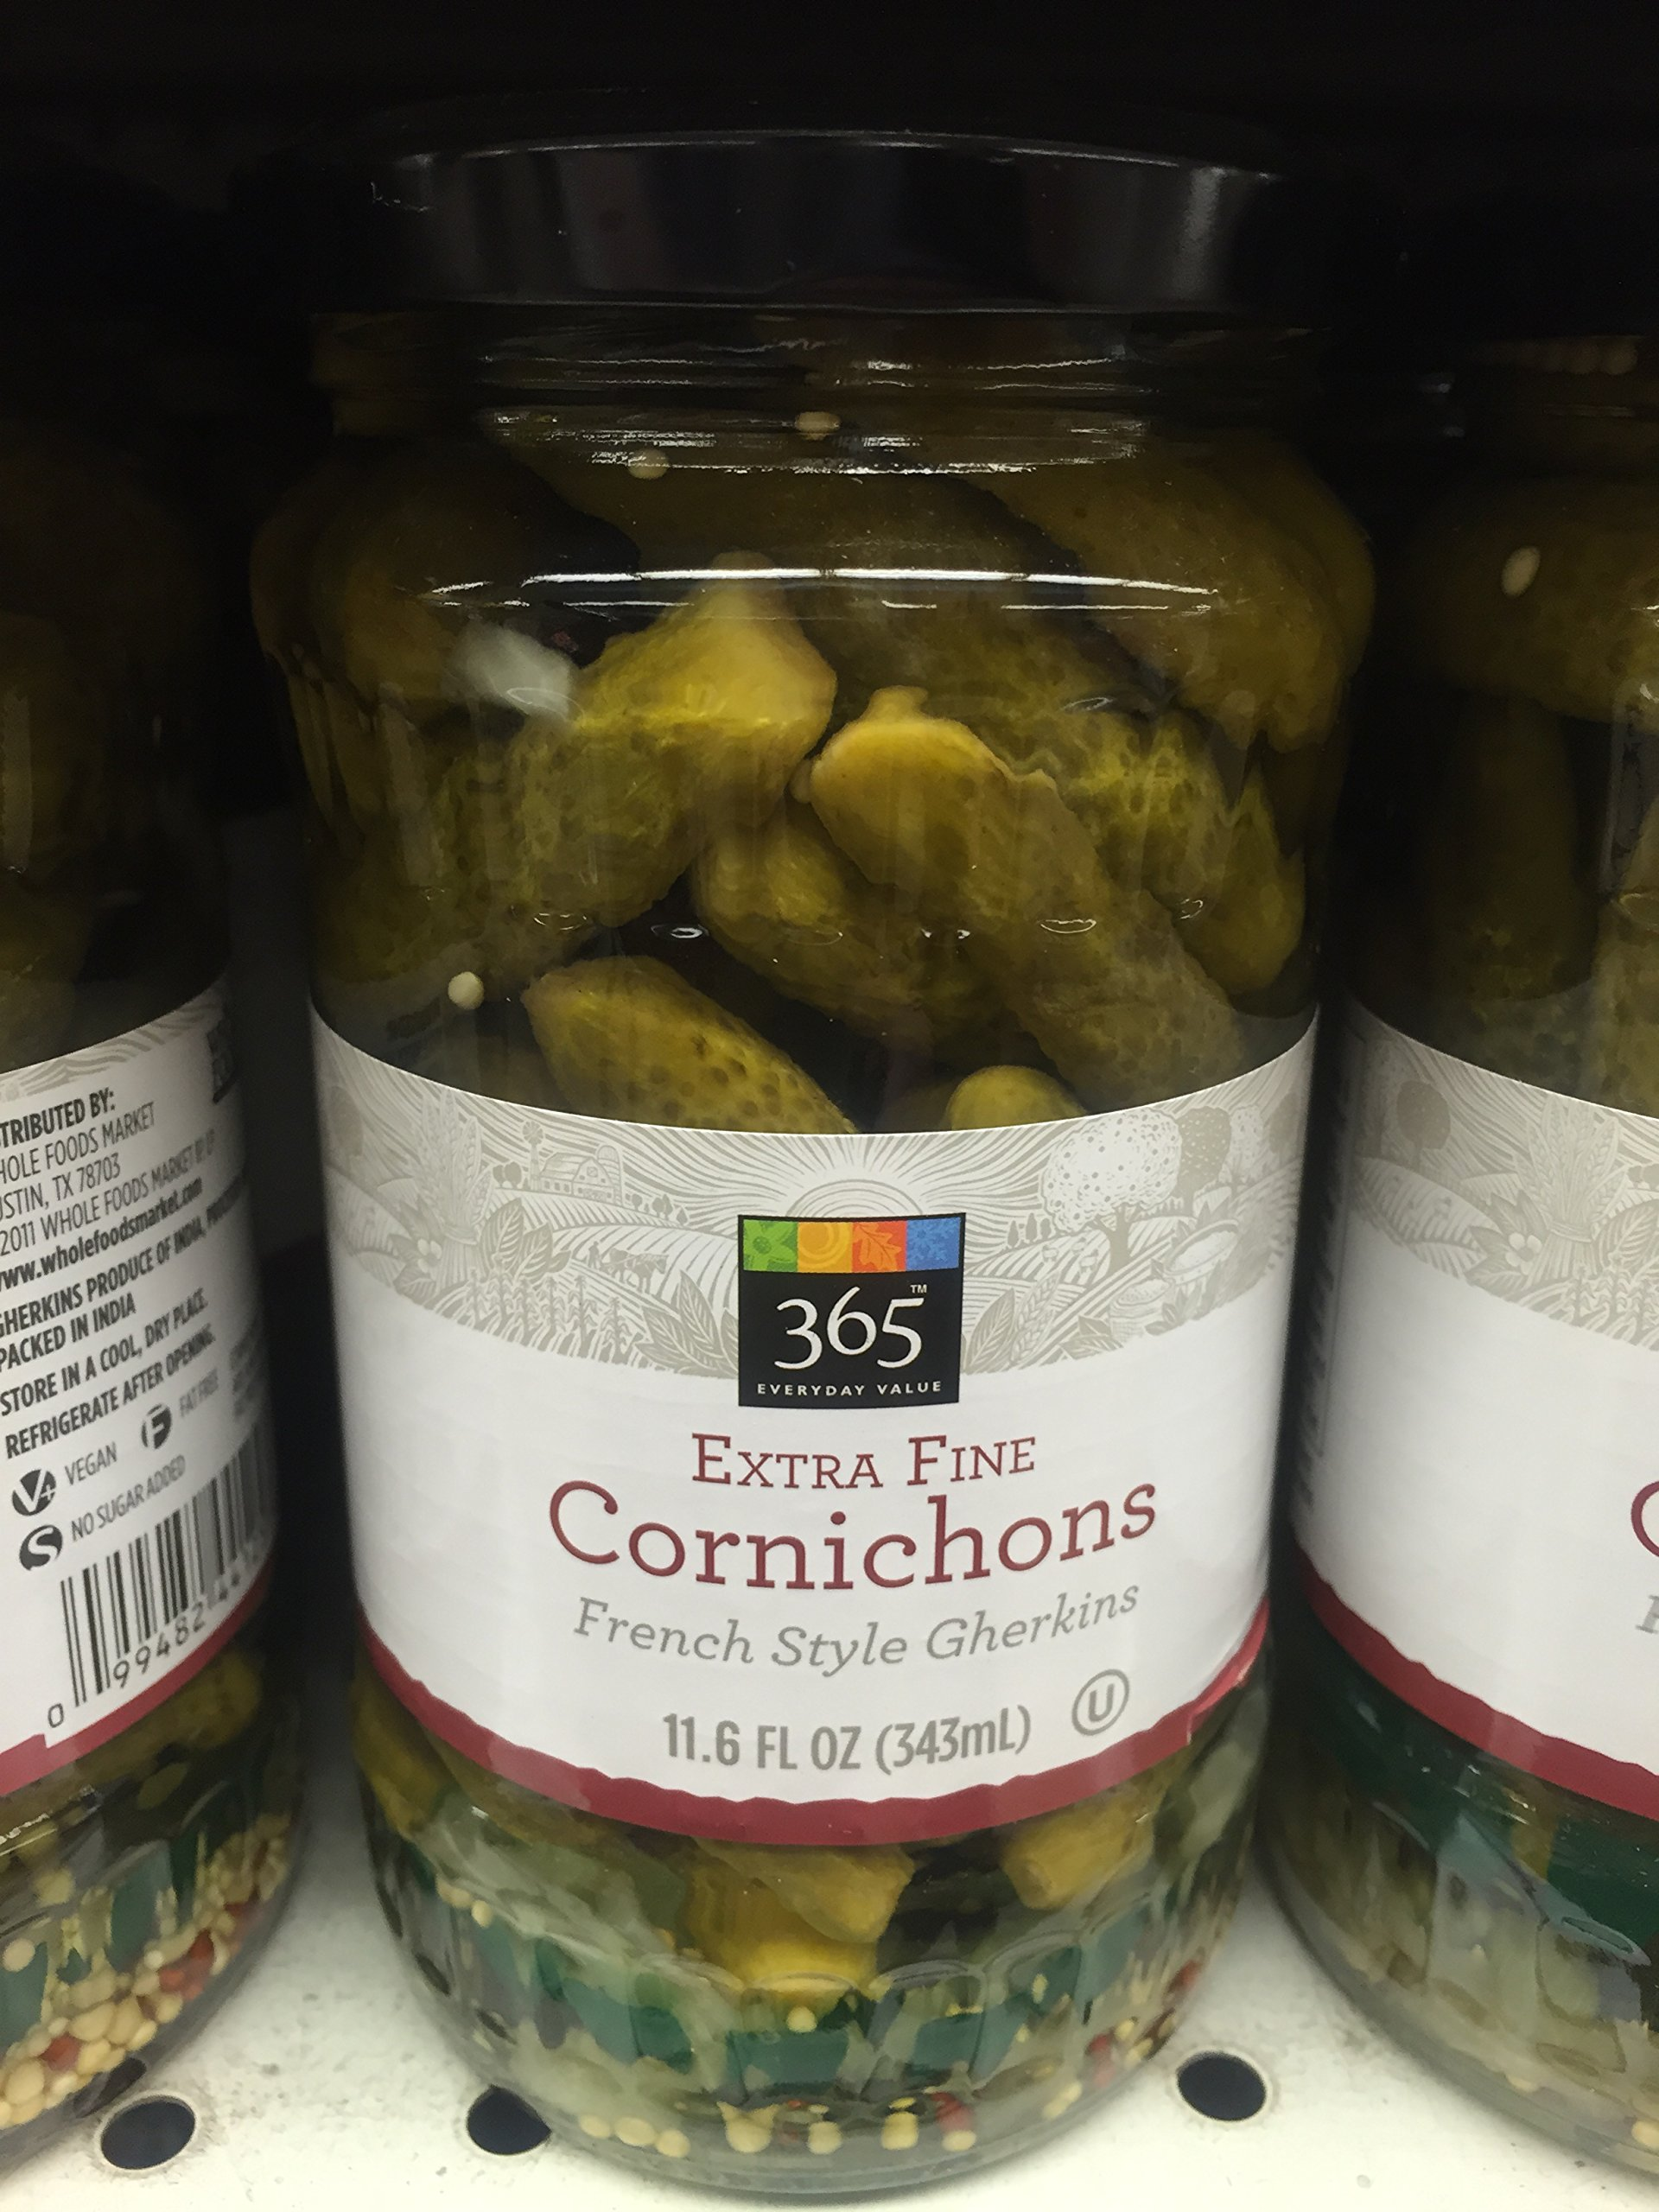 365 Everyday Value Extra Fine Cornichons - French Style Gherkins